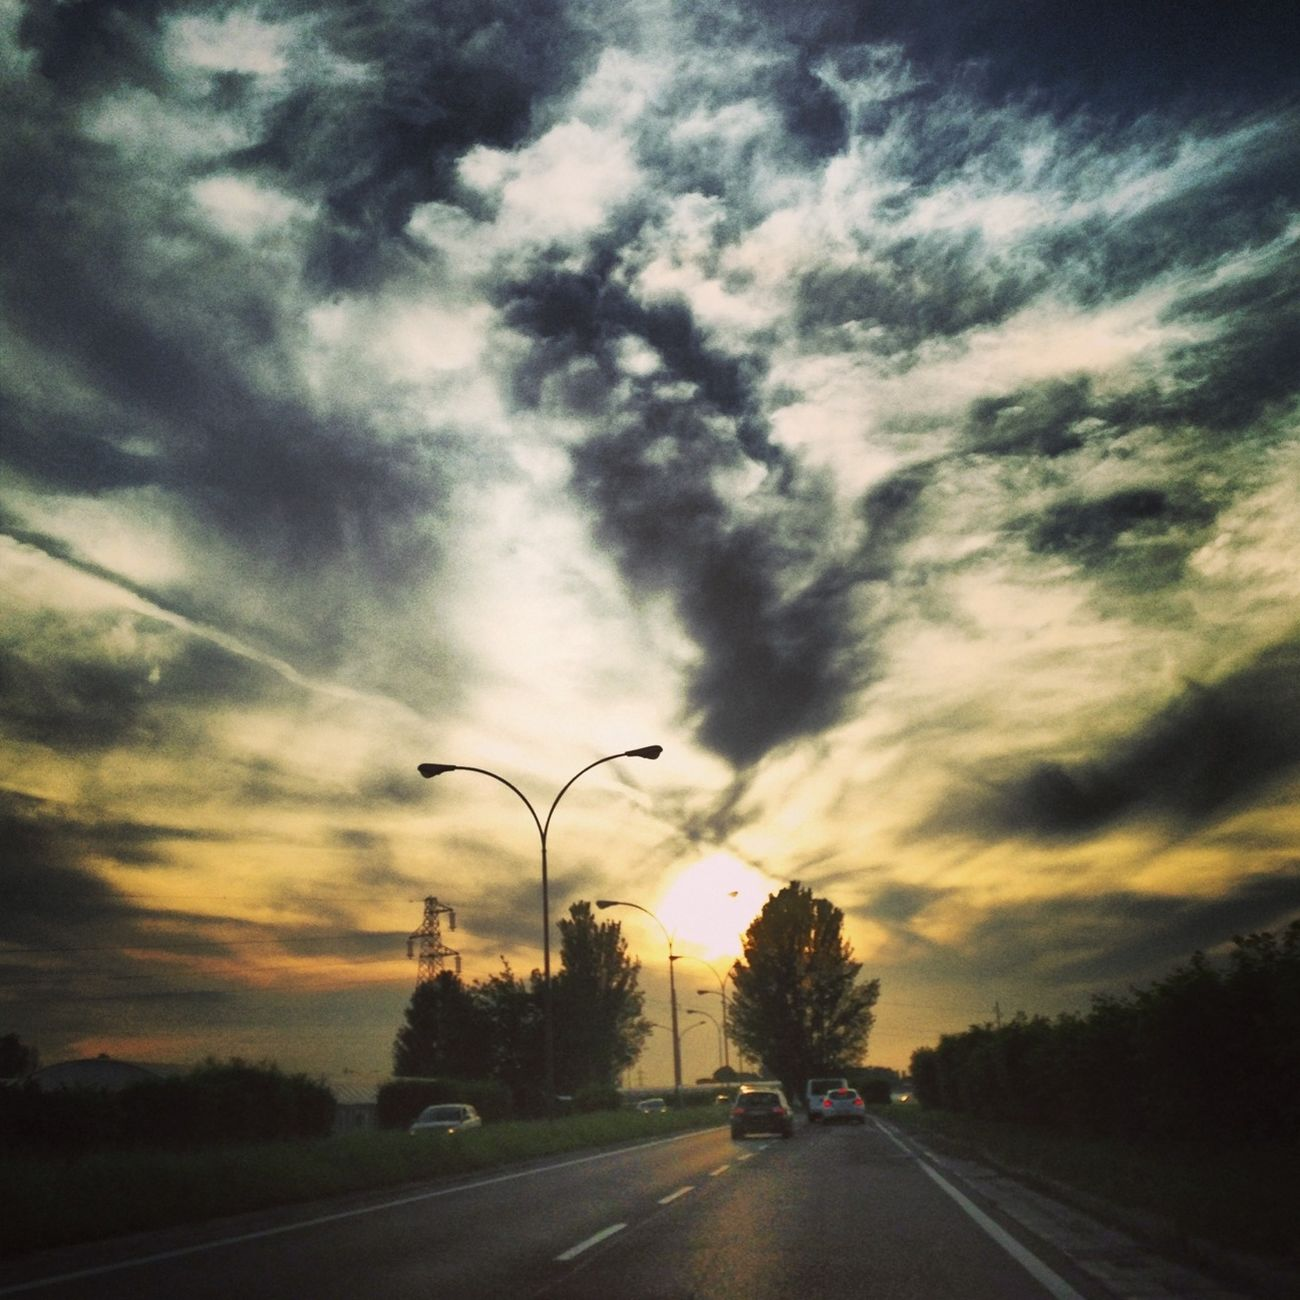 #sunset #sun #clouds #skylovers #sky #nature #beautifulinnature #naturalbeauty #photography #landscape